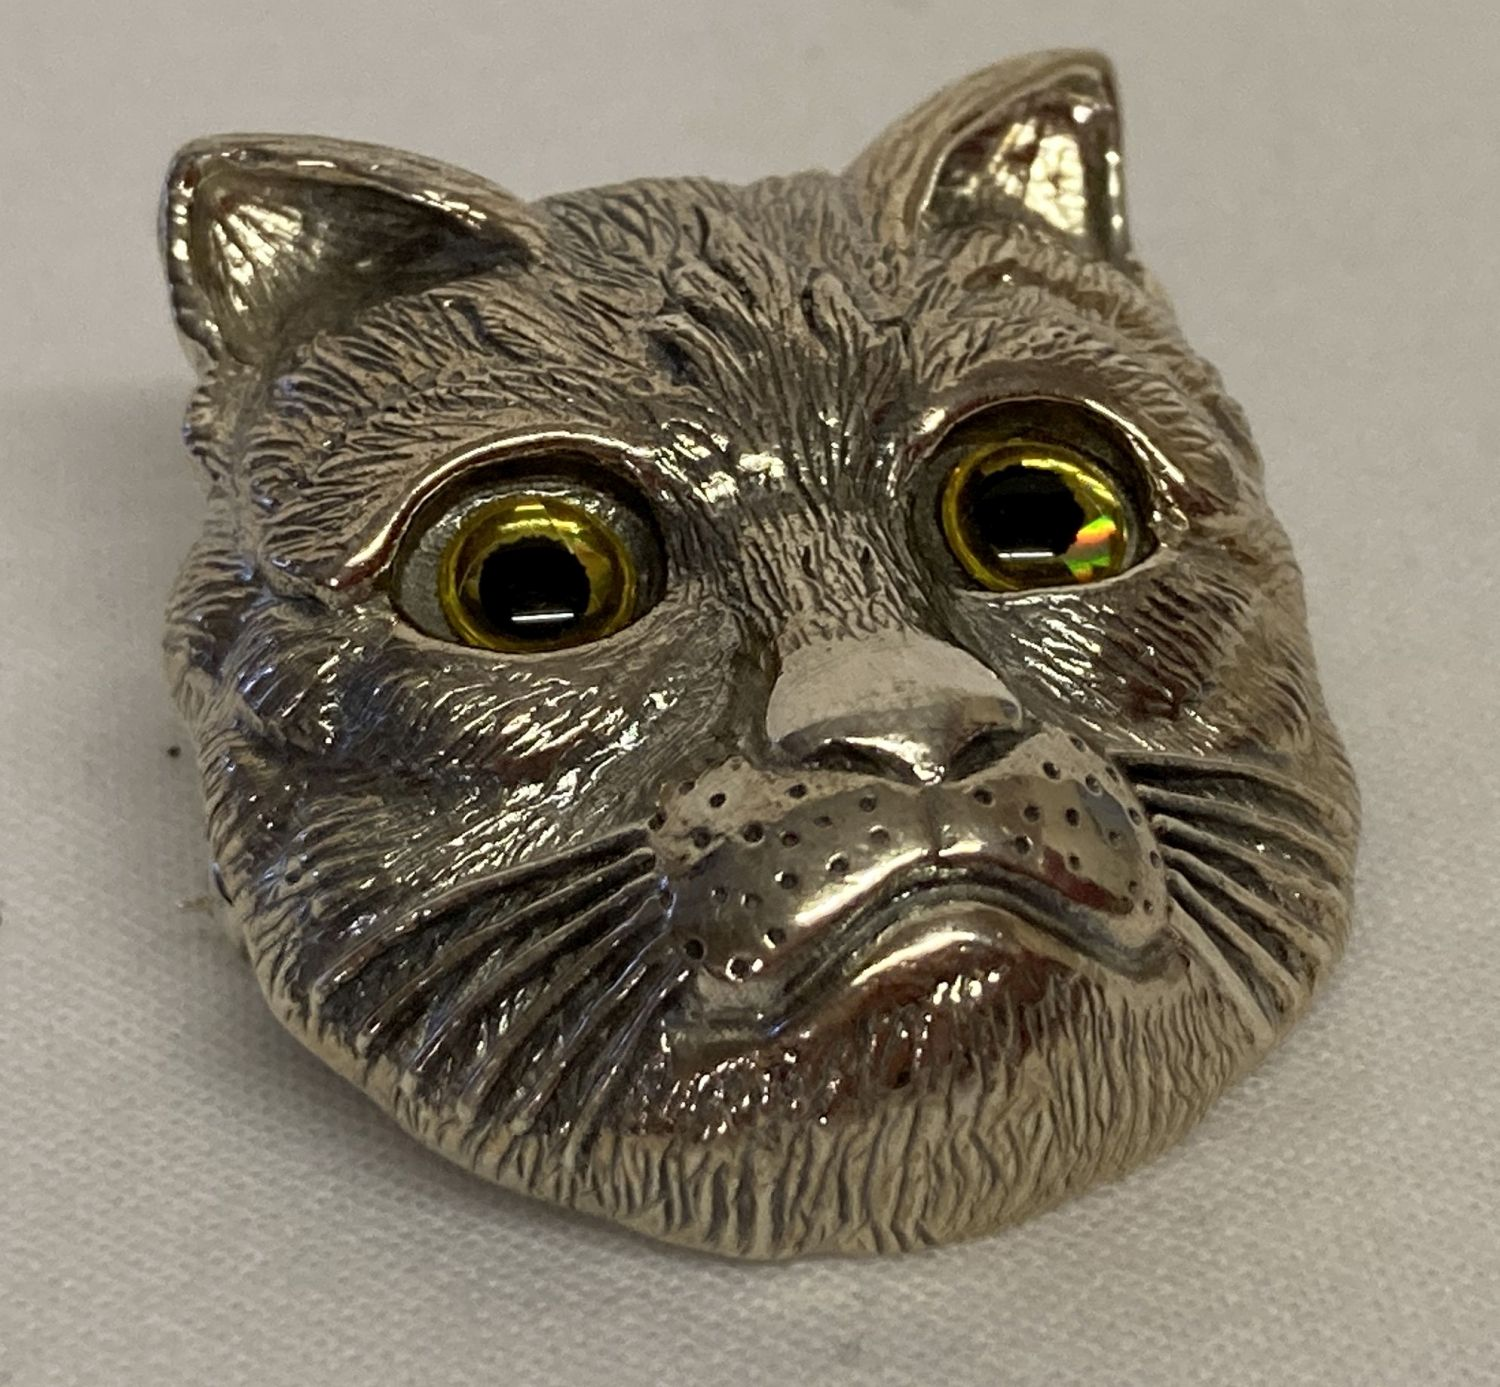 A silver pendant brooch in the shape of a cats head with glass set eyes.